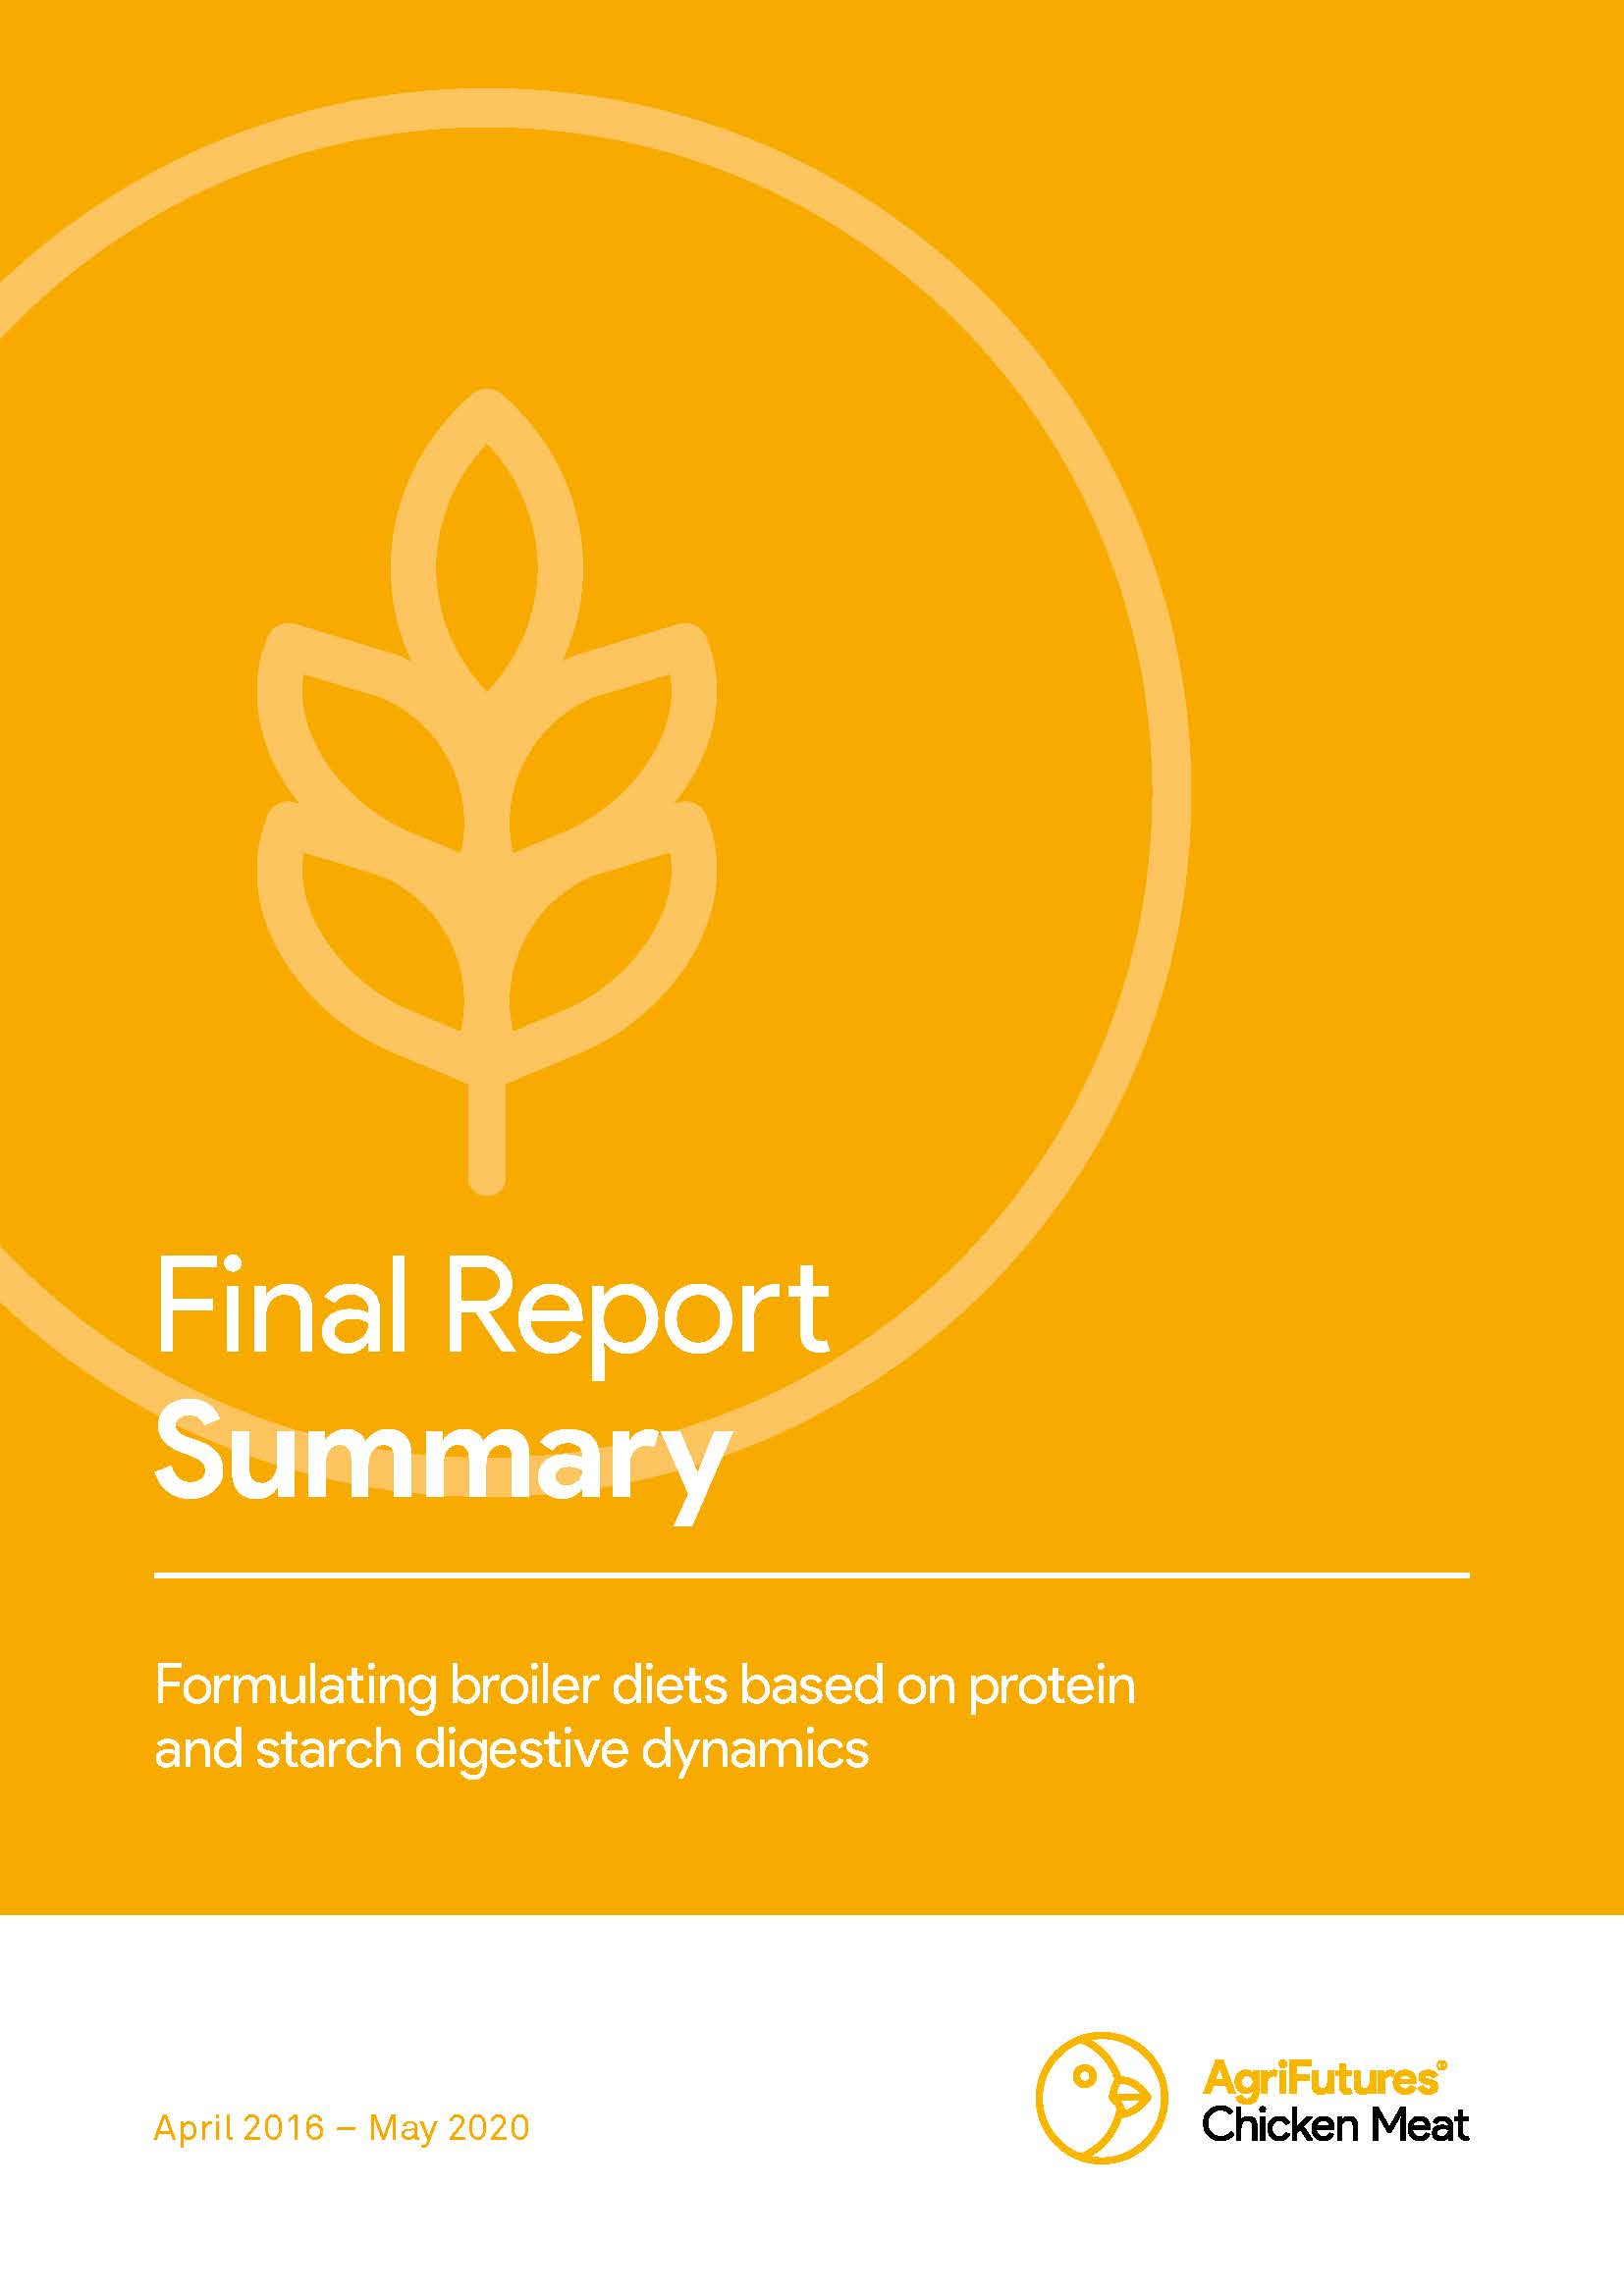 Final report summary: Formulating broiler diets based on protein and starch digestive dynamics - image